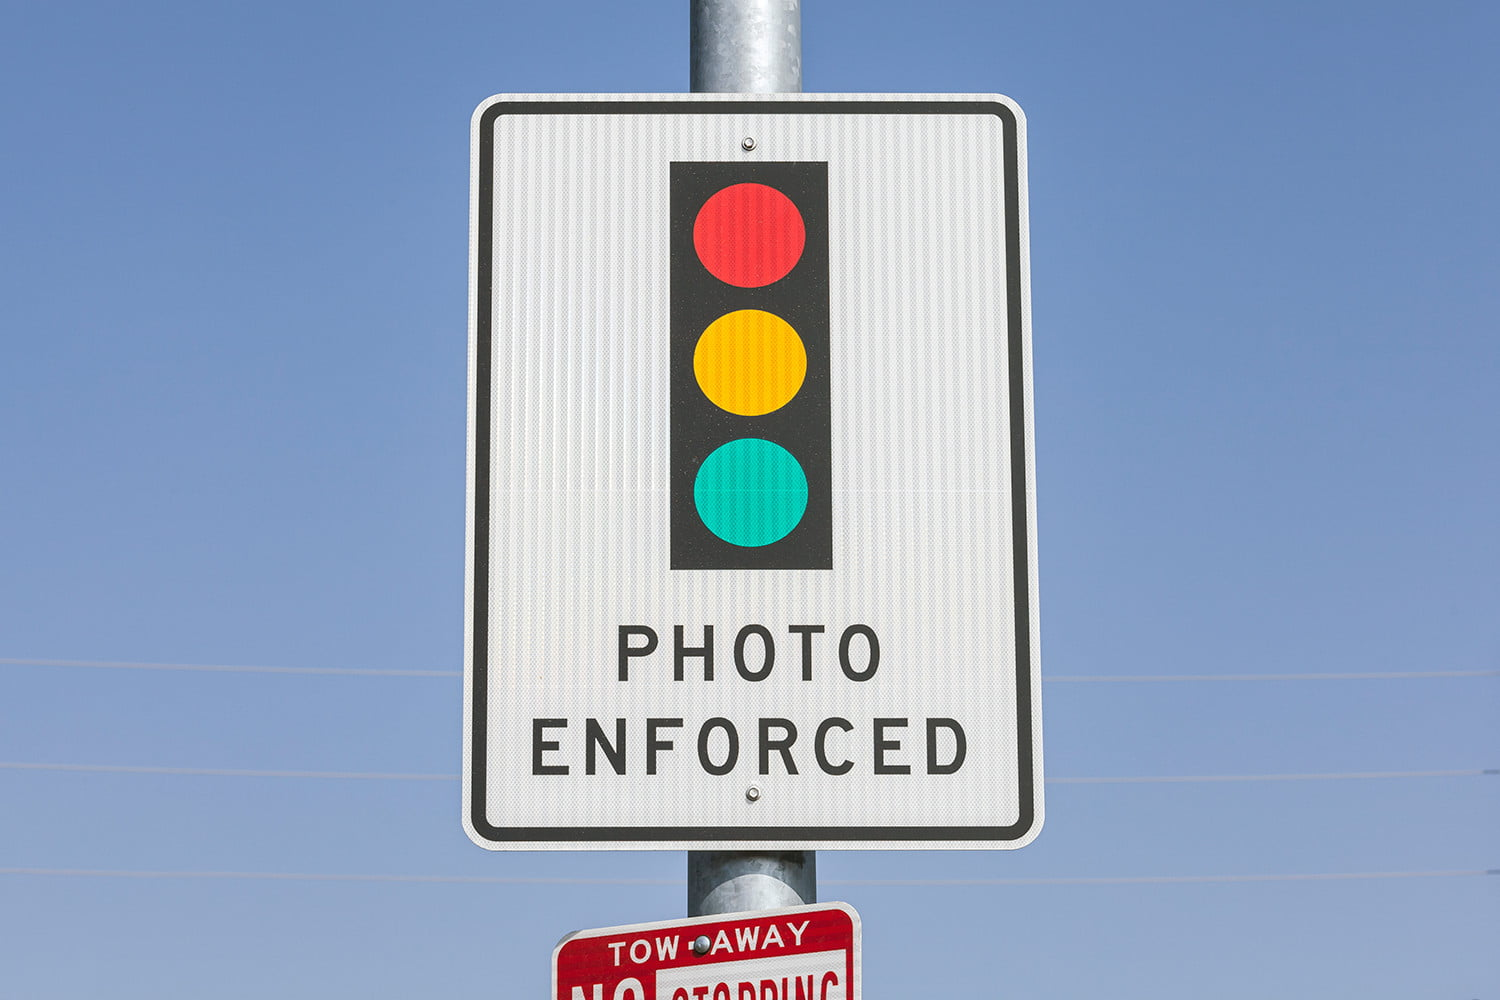 Captivating As Of 2013, A Photo Speeding Ticket In Baltimore Costed $40, And A Red Light  Camera Ticket Carried A $75 Fine. About $11 Of Each Fine Was Contracted To  Go ...